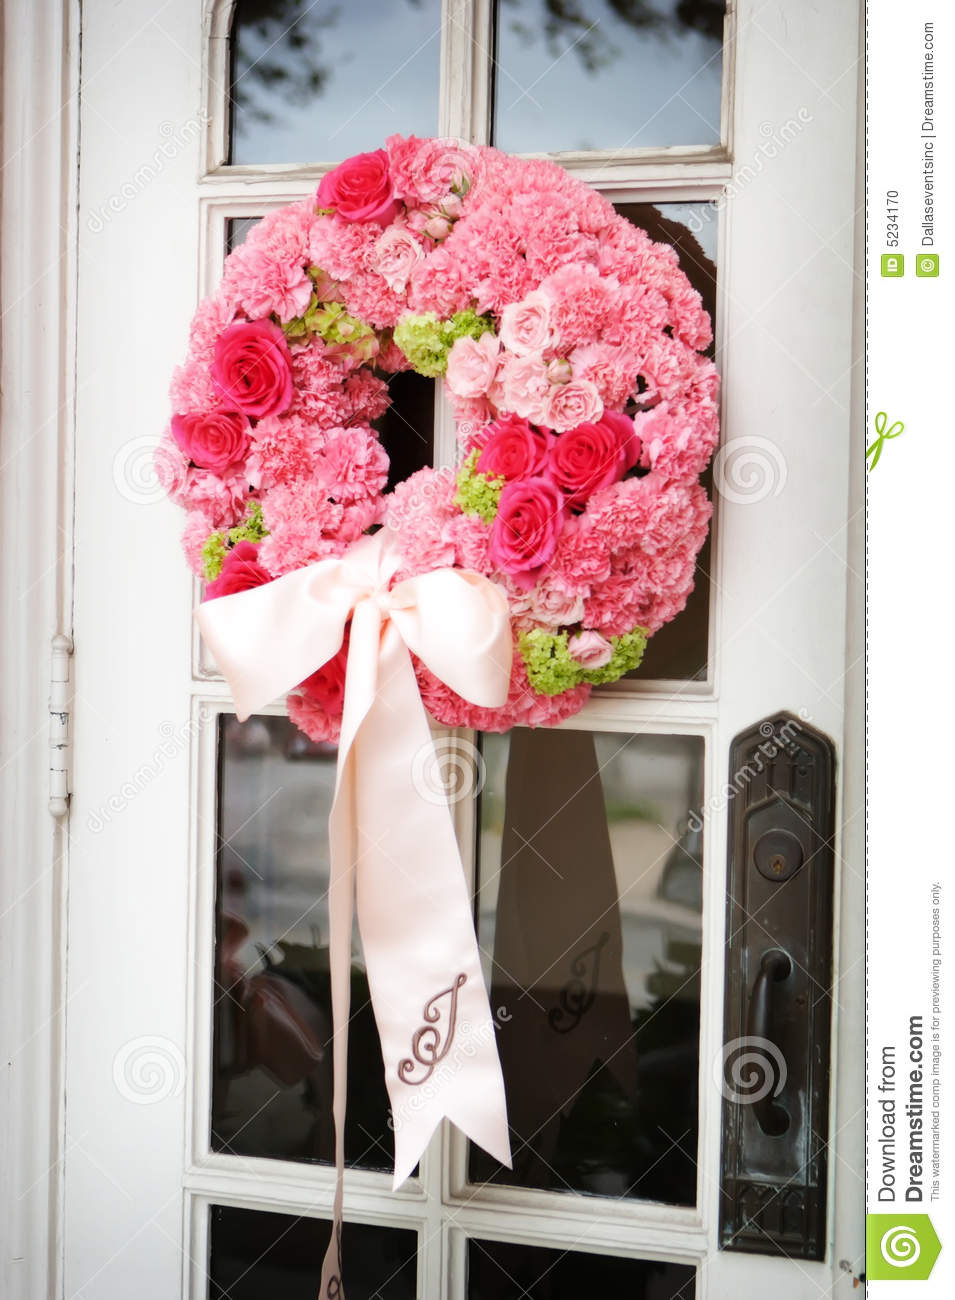 Wedding Flowers Outside A Church Stock Photo - Image of fresh ...